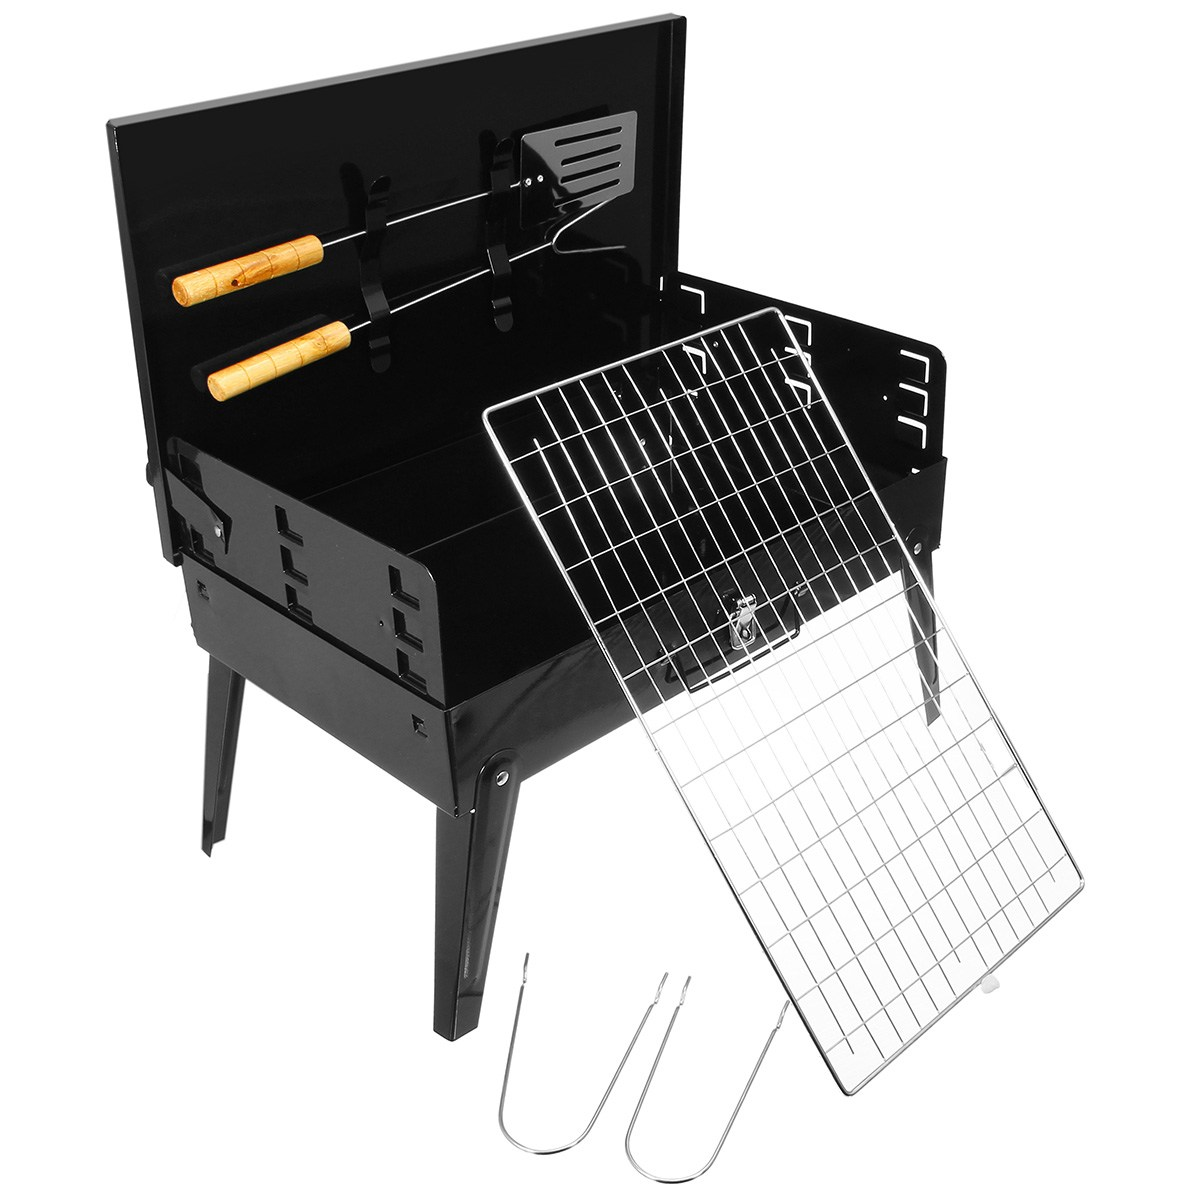 Folding Portable BBQ Barbecue Grill with Tools Charcoal Camping Garden Outdoor tools Stainless Steel Cooking Tools Stove Ware automatic smokeless bbq grill household electric hotplate stove teppanyaki barbecue pan skewer machine stainless steel outdoor